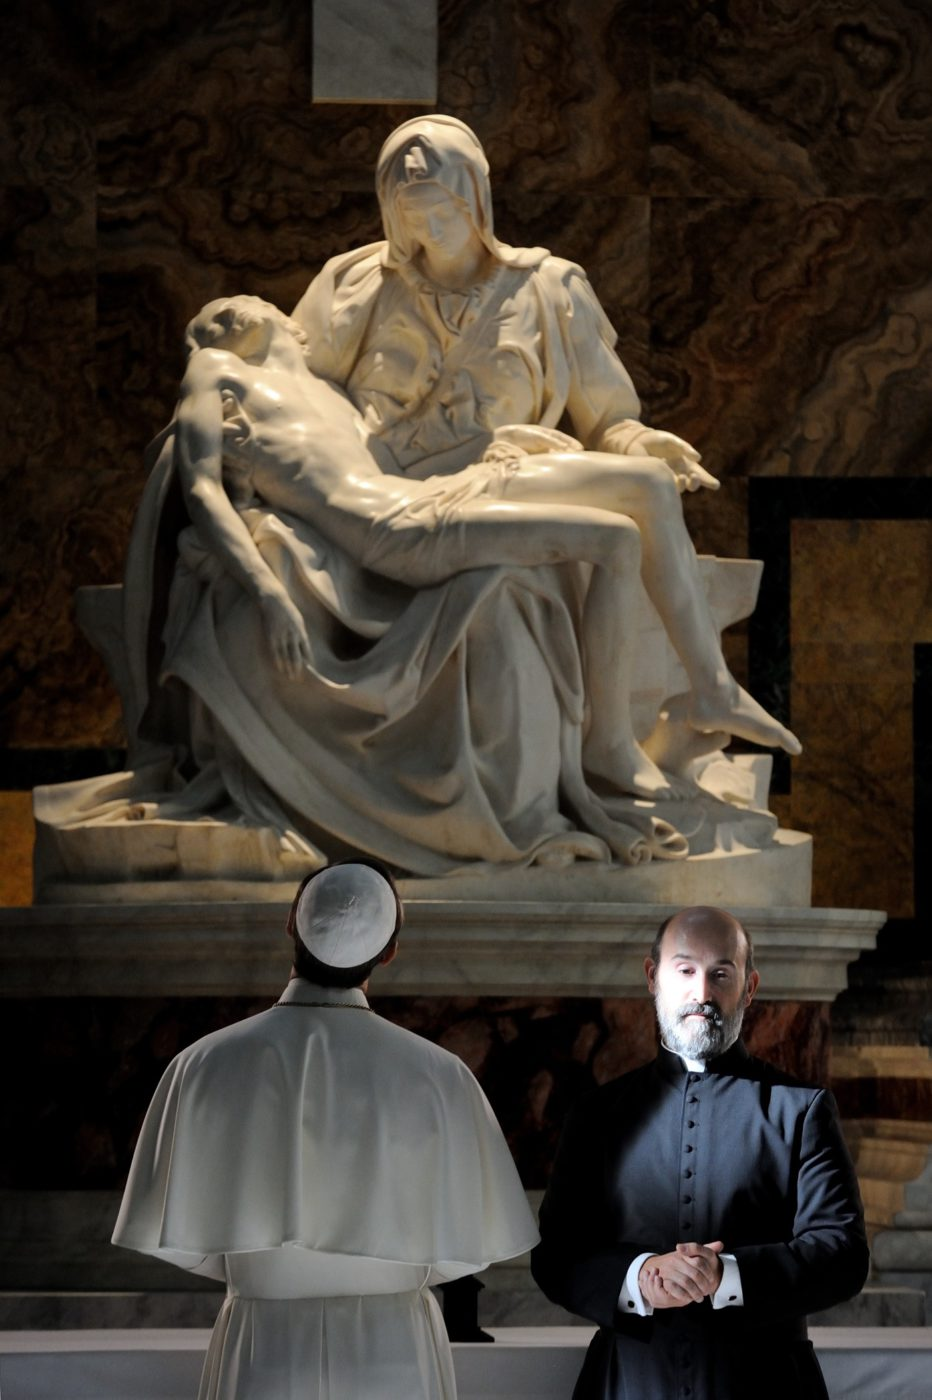 the-young-pope-2016-paolo-sorrentino-007.jpg